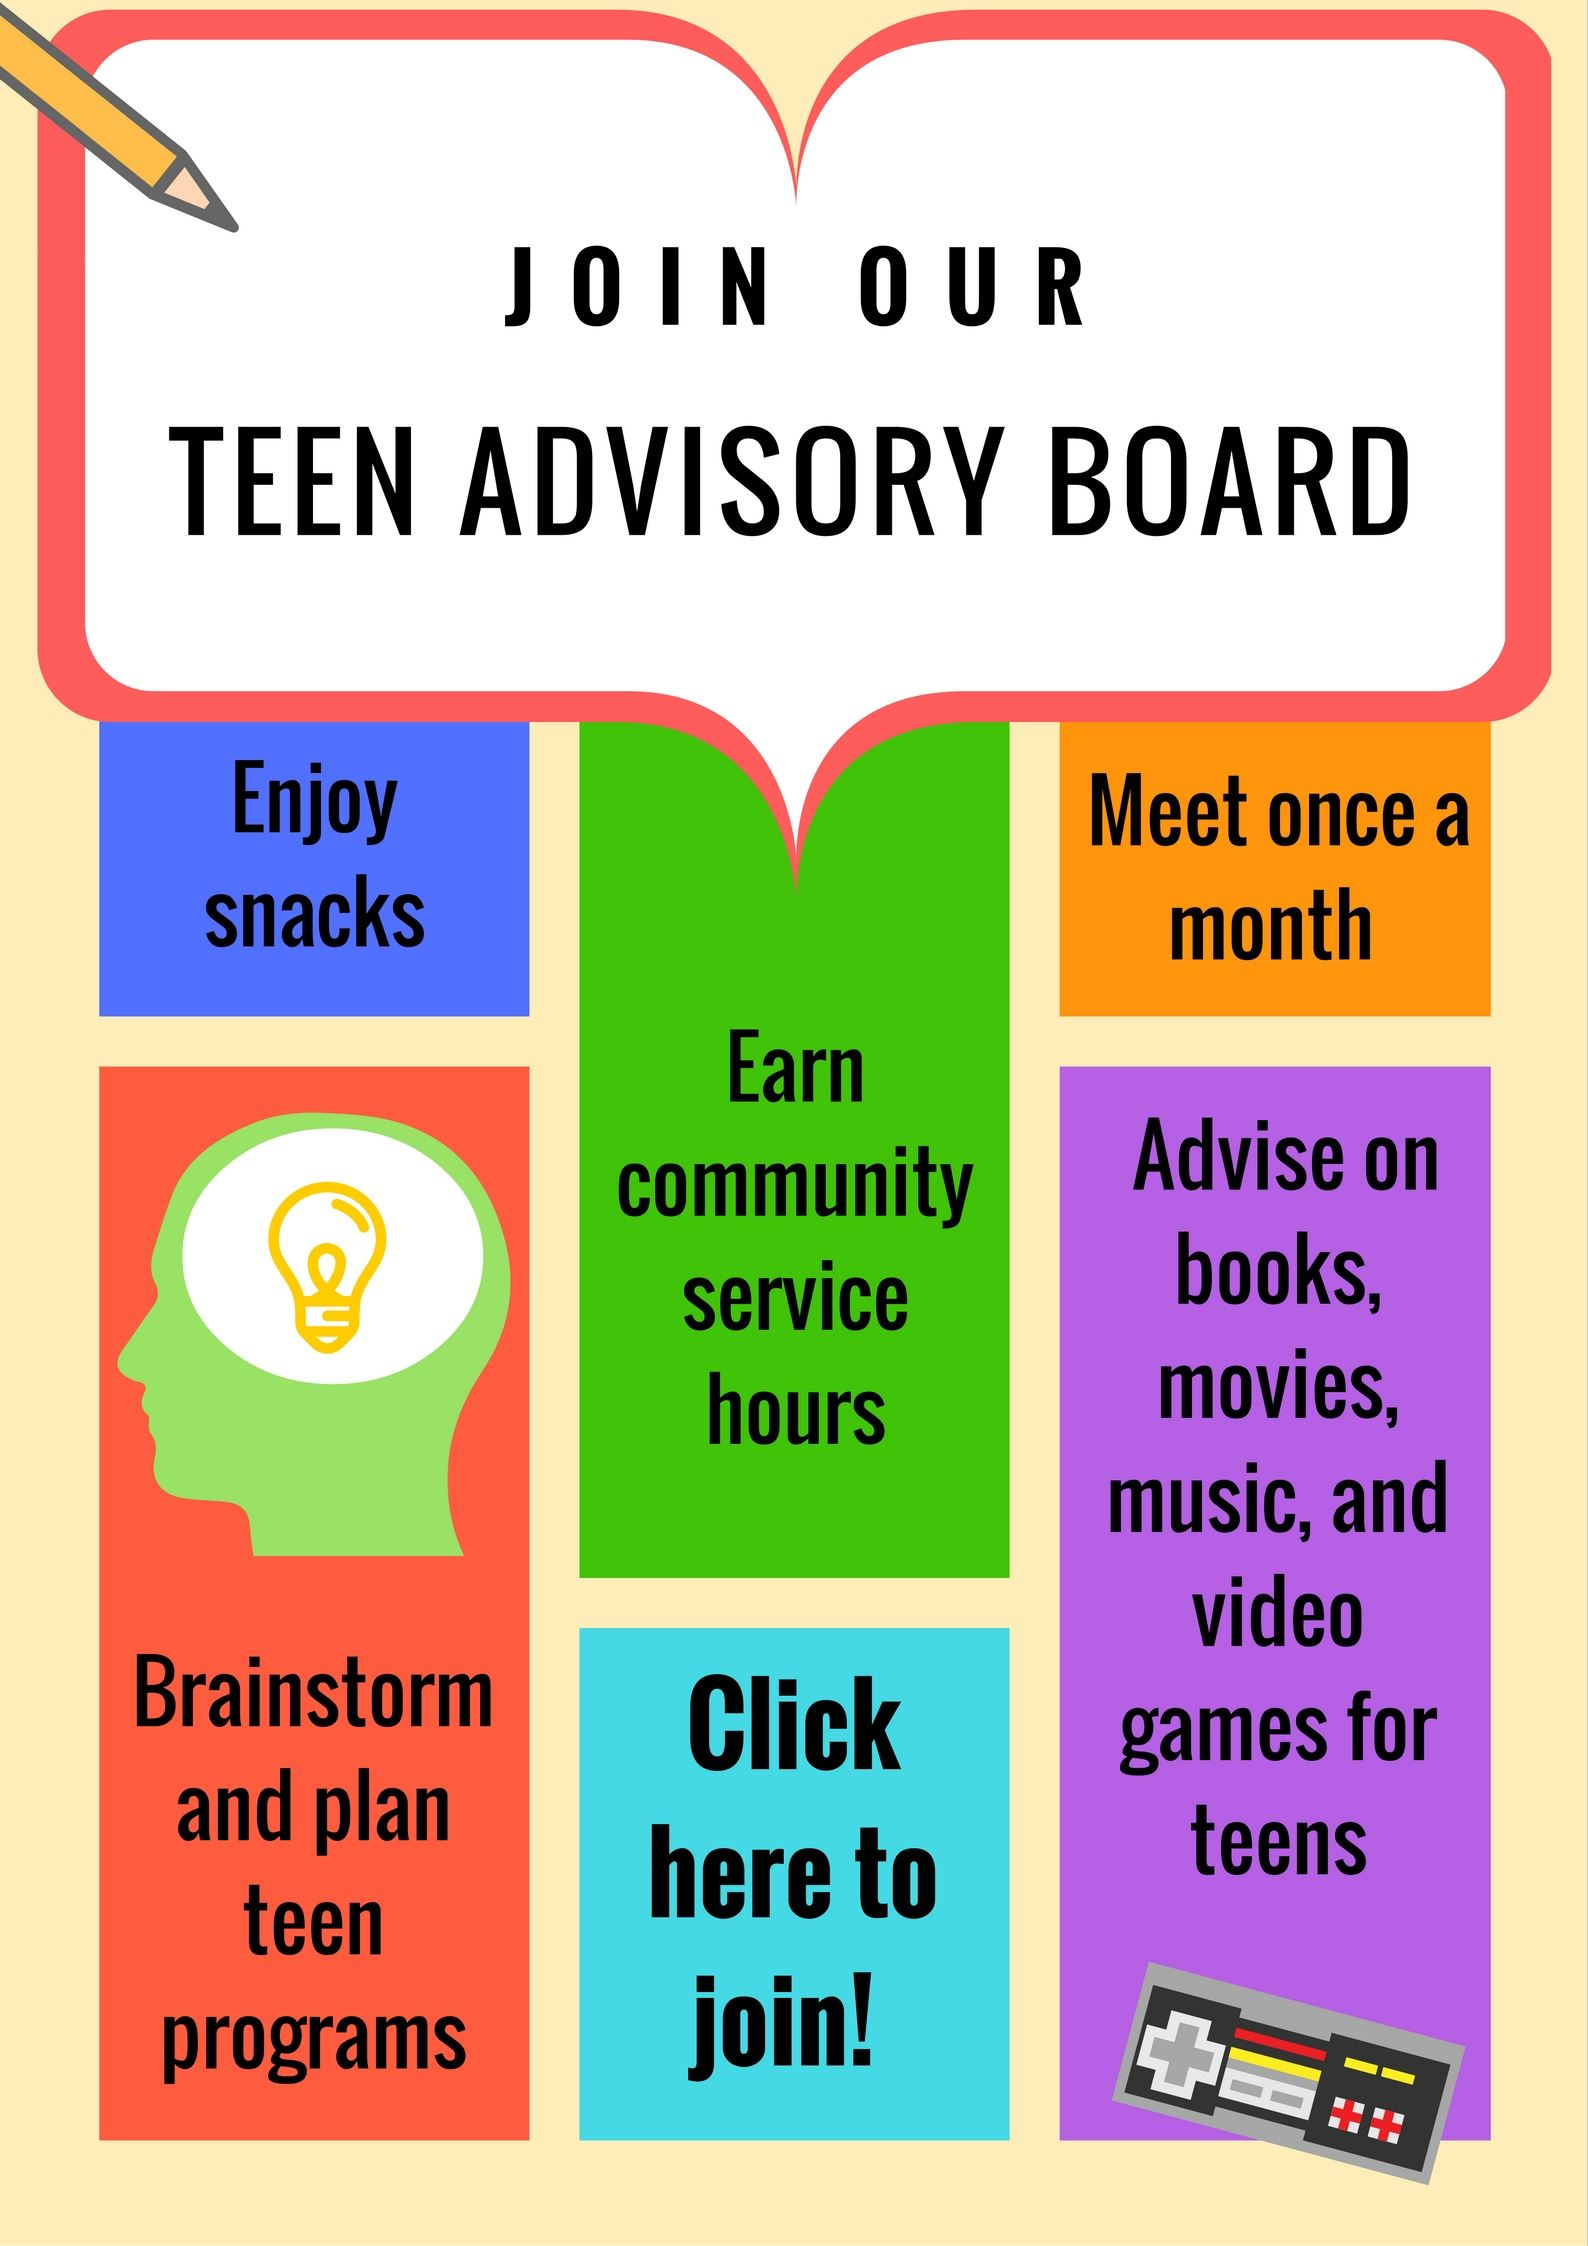 Join our teen advisory board